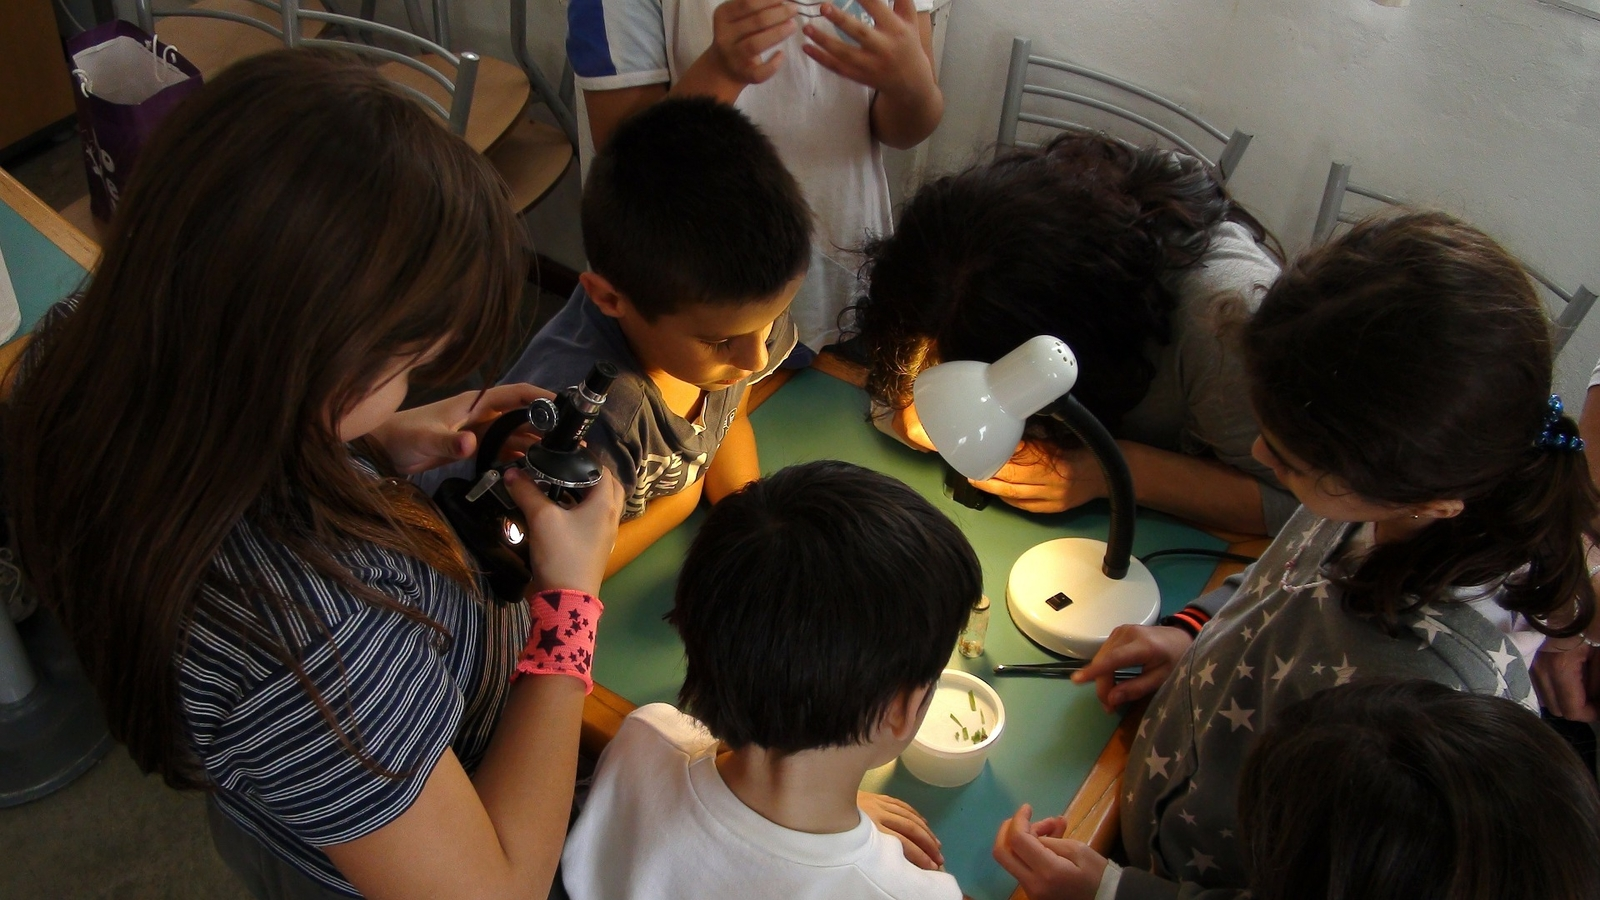 children engage in a science project in a classroom